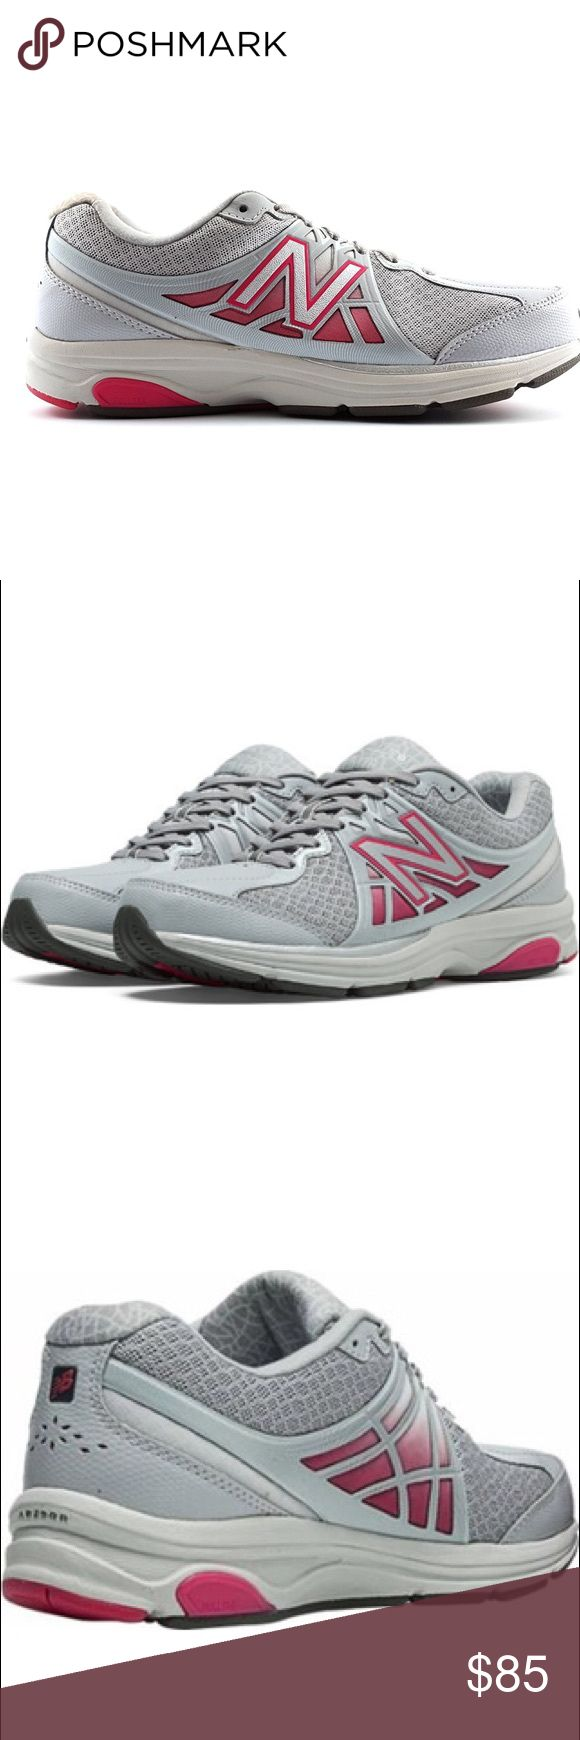 NEW BALANCE ww847v2 grey and pink NWT New Balance ww847v2. Women's size 7. Grey and pink. NWT, never worn. No box.  Synthetic/mesh upper for breathability and support Lace-up closure Collar, tongue and heel feature OrthoLite® cushioning foam inserts Seamless PHANTOM LINER® lining OrthoLite® footbed cushioning Polyurethane Strobel board for added padding Energy-returning full length ABZORB® midsole  No modeling. Open to reasonable offers!  Bundle & save 10%! 💕 New Balance Shoes Sneakers